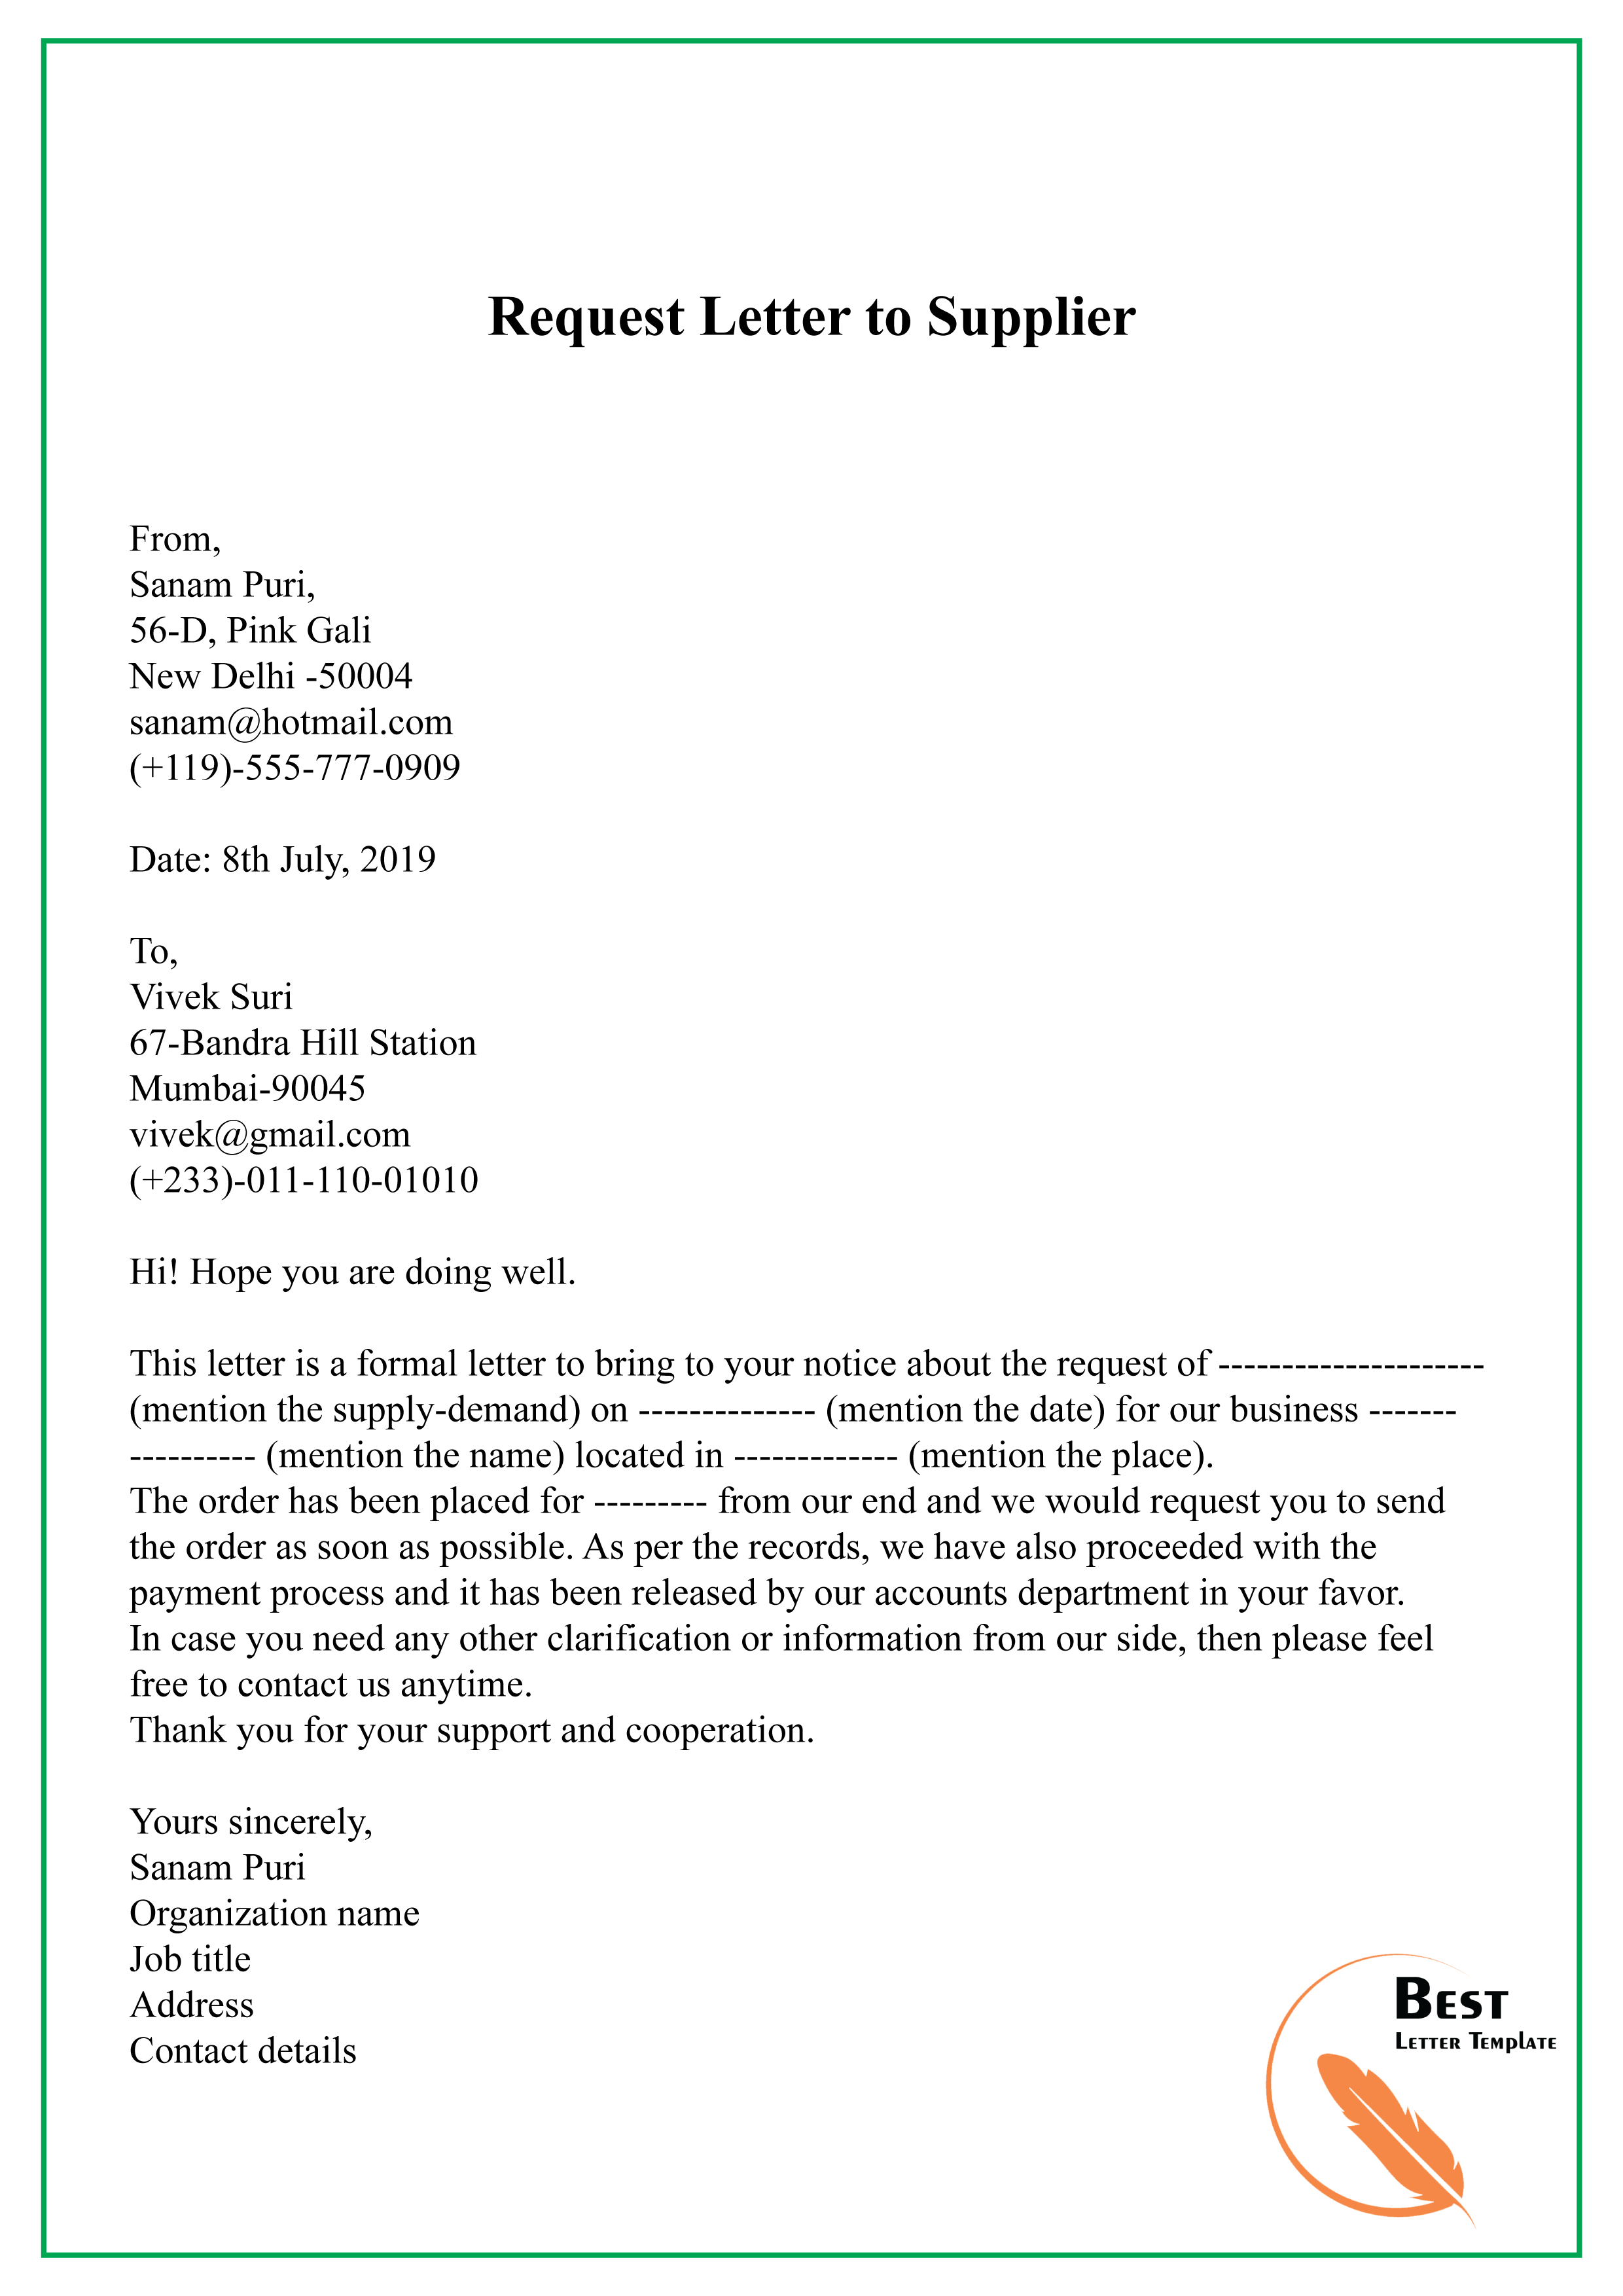 Request Letter to Supplier-01 - Best Letter Template